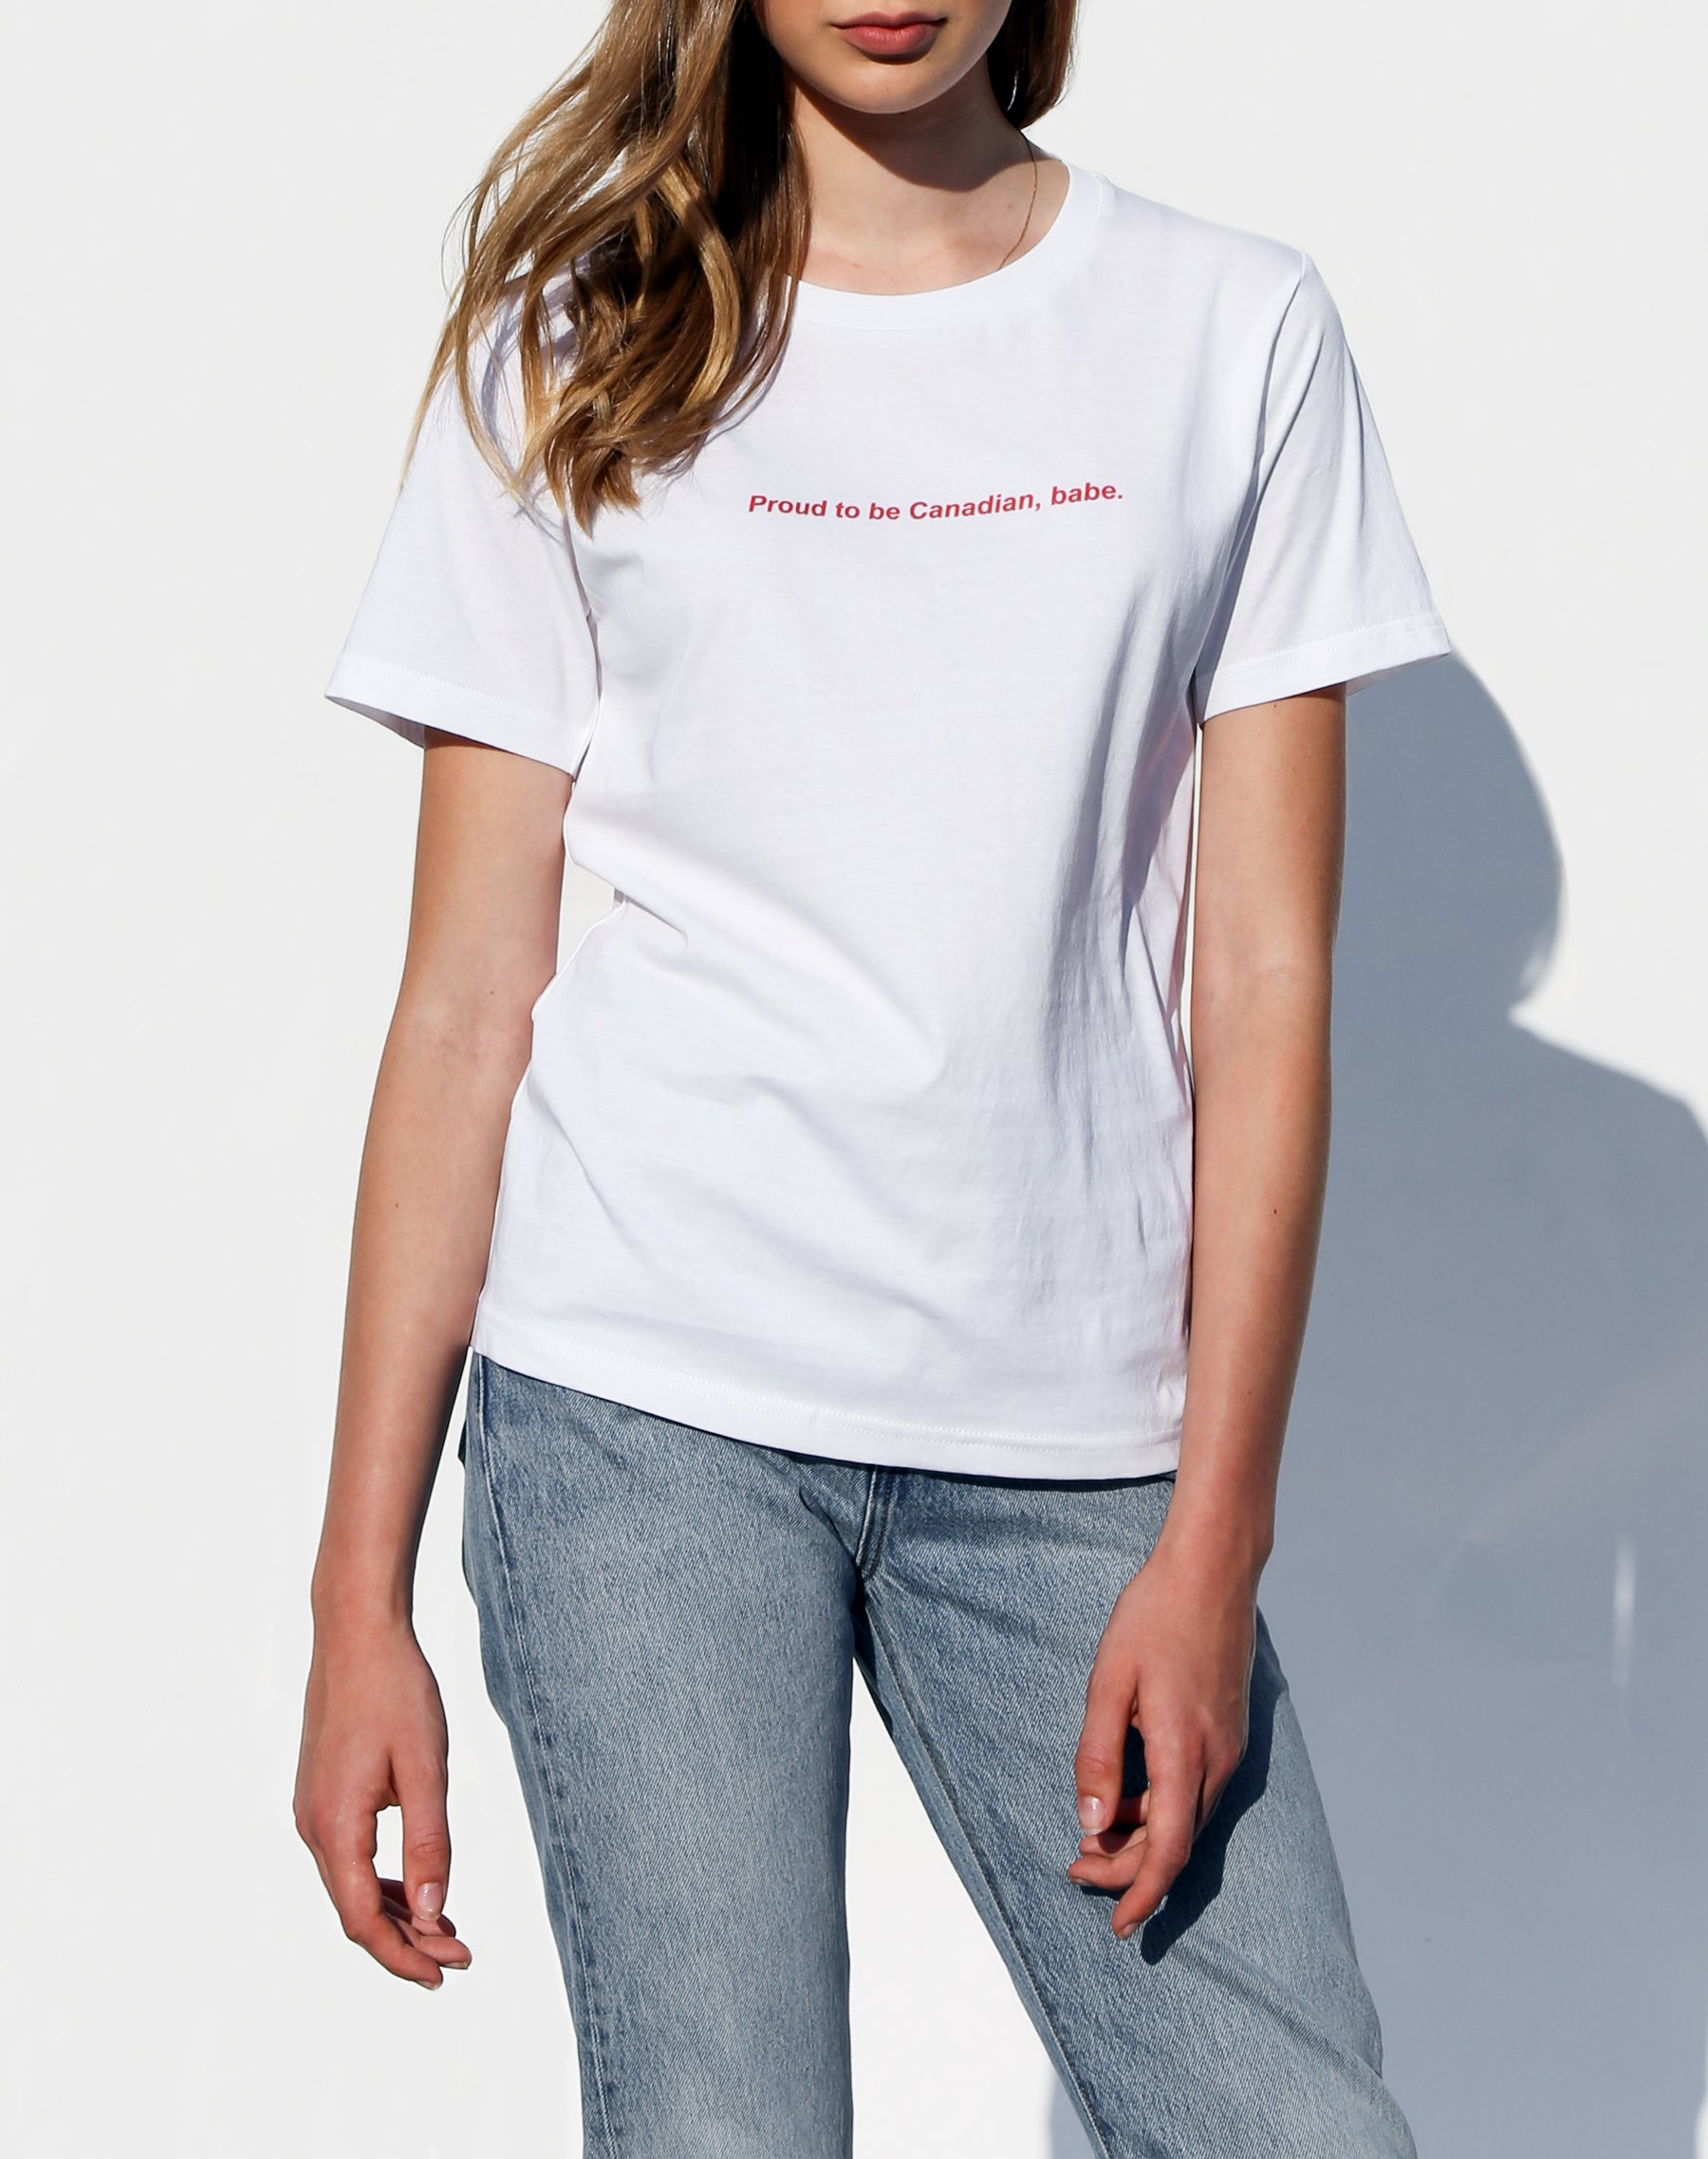 Photo of the Proud to be Canadian classic crew neck tee in white from the Canada Day collection by Brunette the Label.